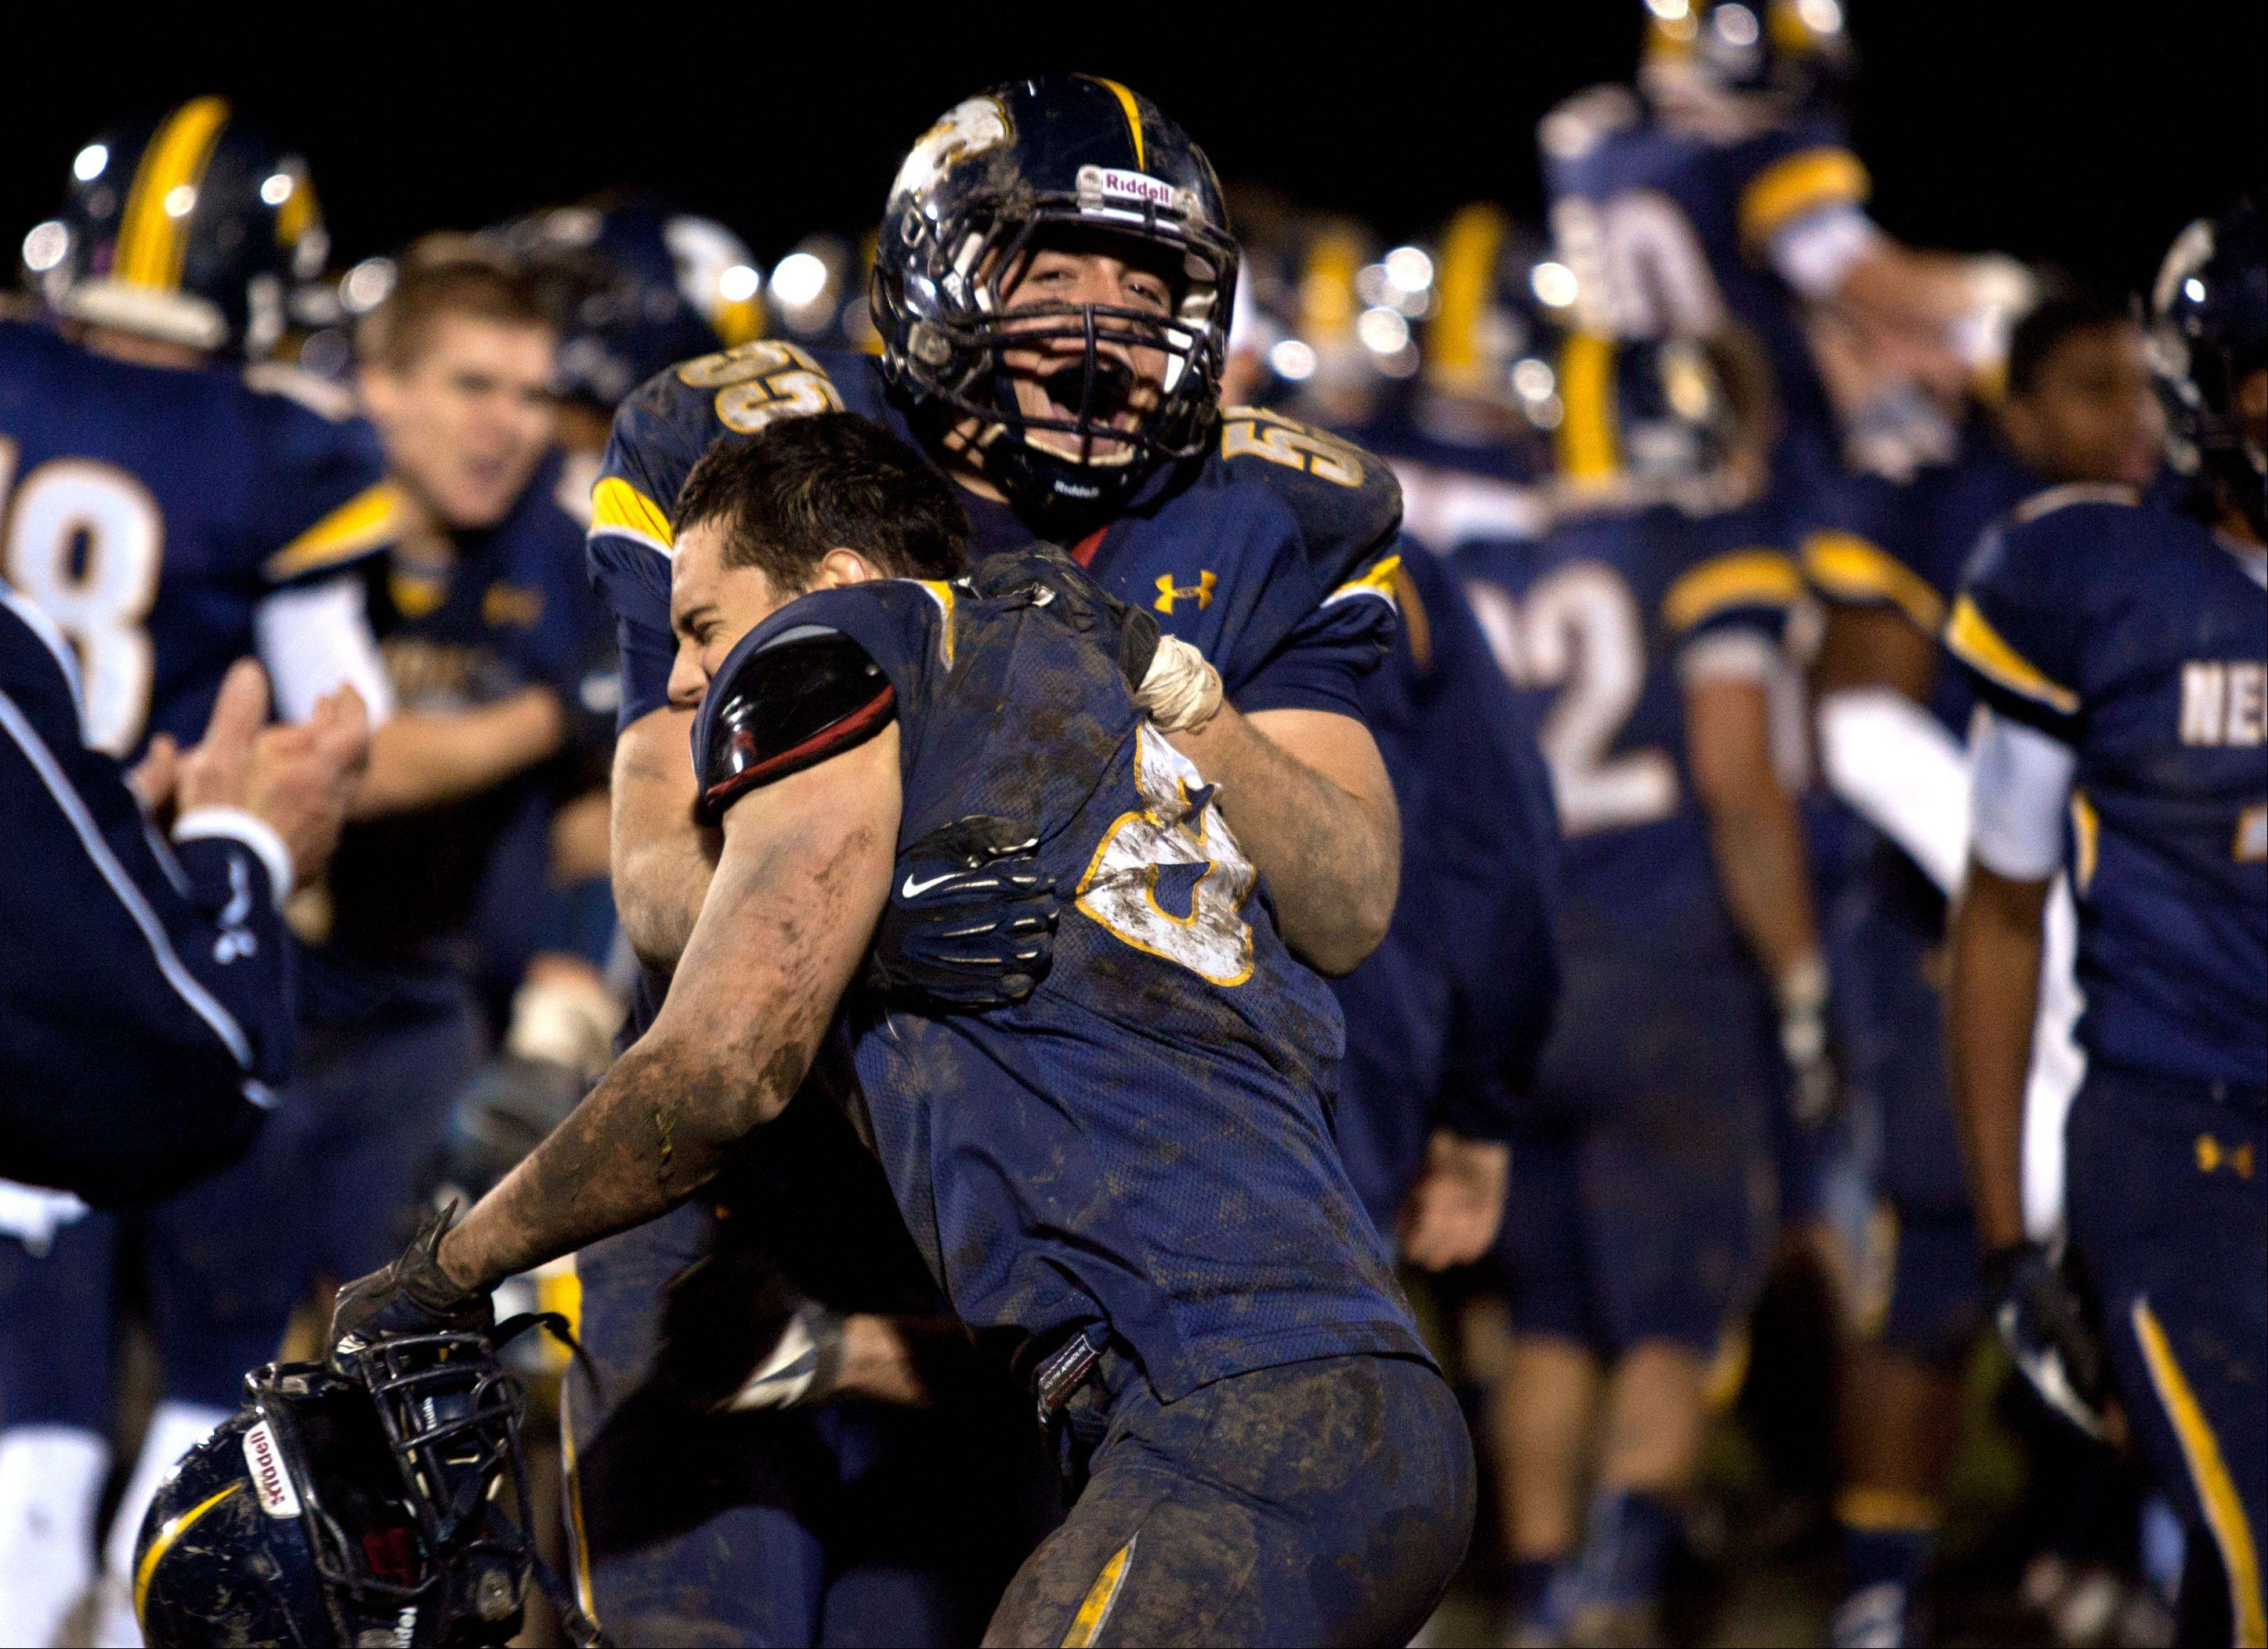 Neuqua Valley's Michael Casas, 55, and John Moore, 8, celebrate Saturday's win over Waubonsie Valley.